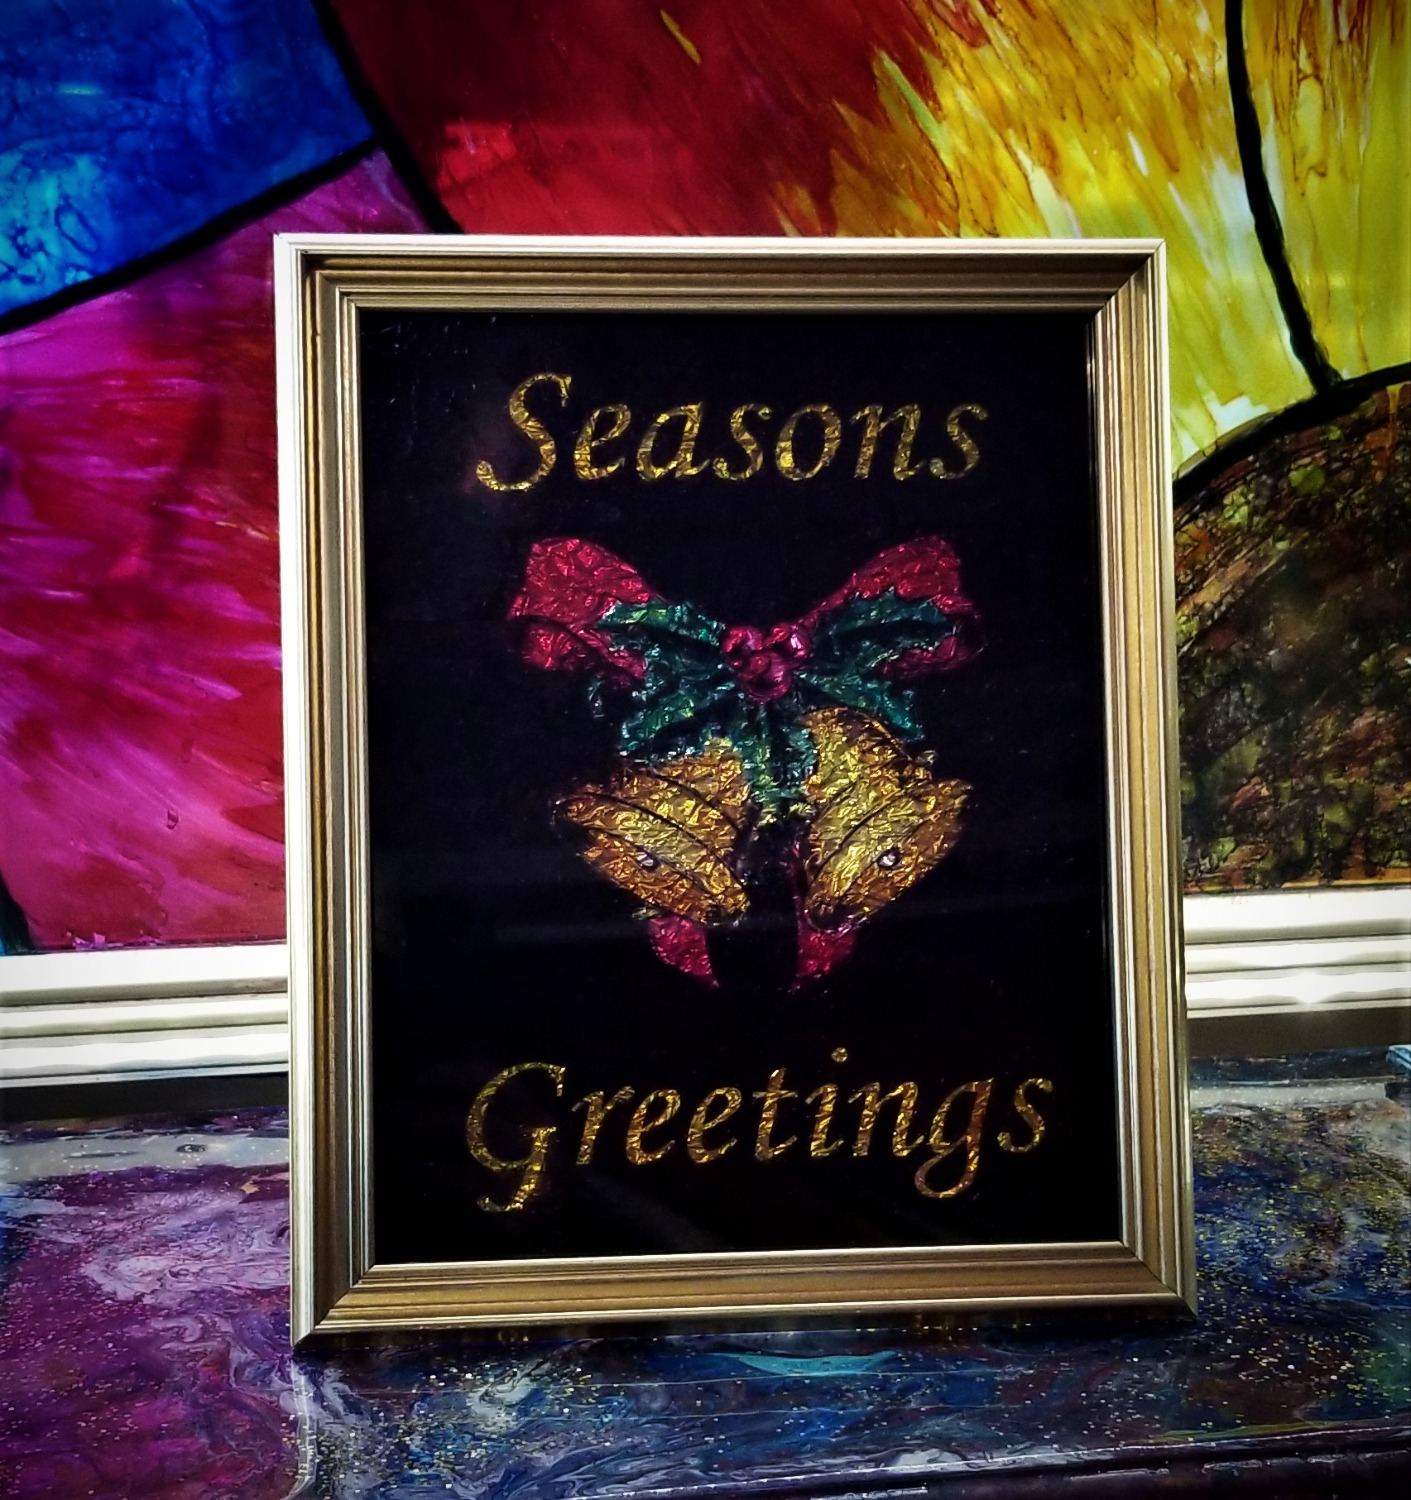 Seasons Greetings Edited_edited